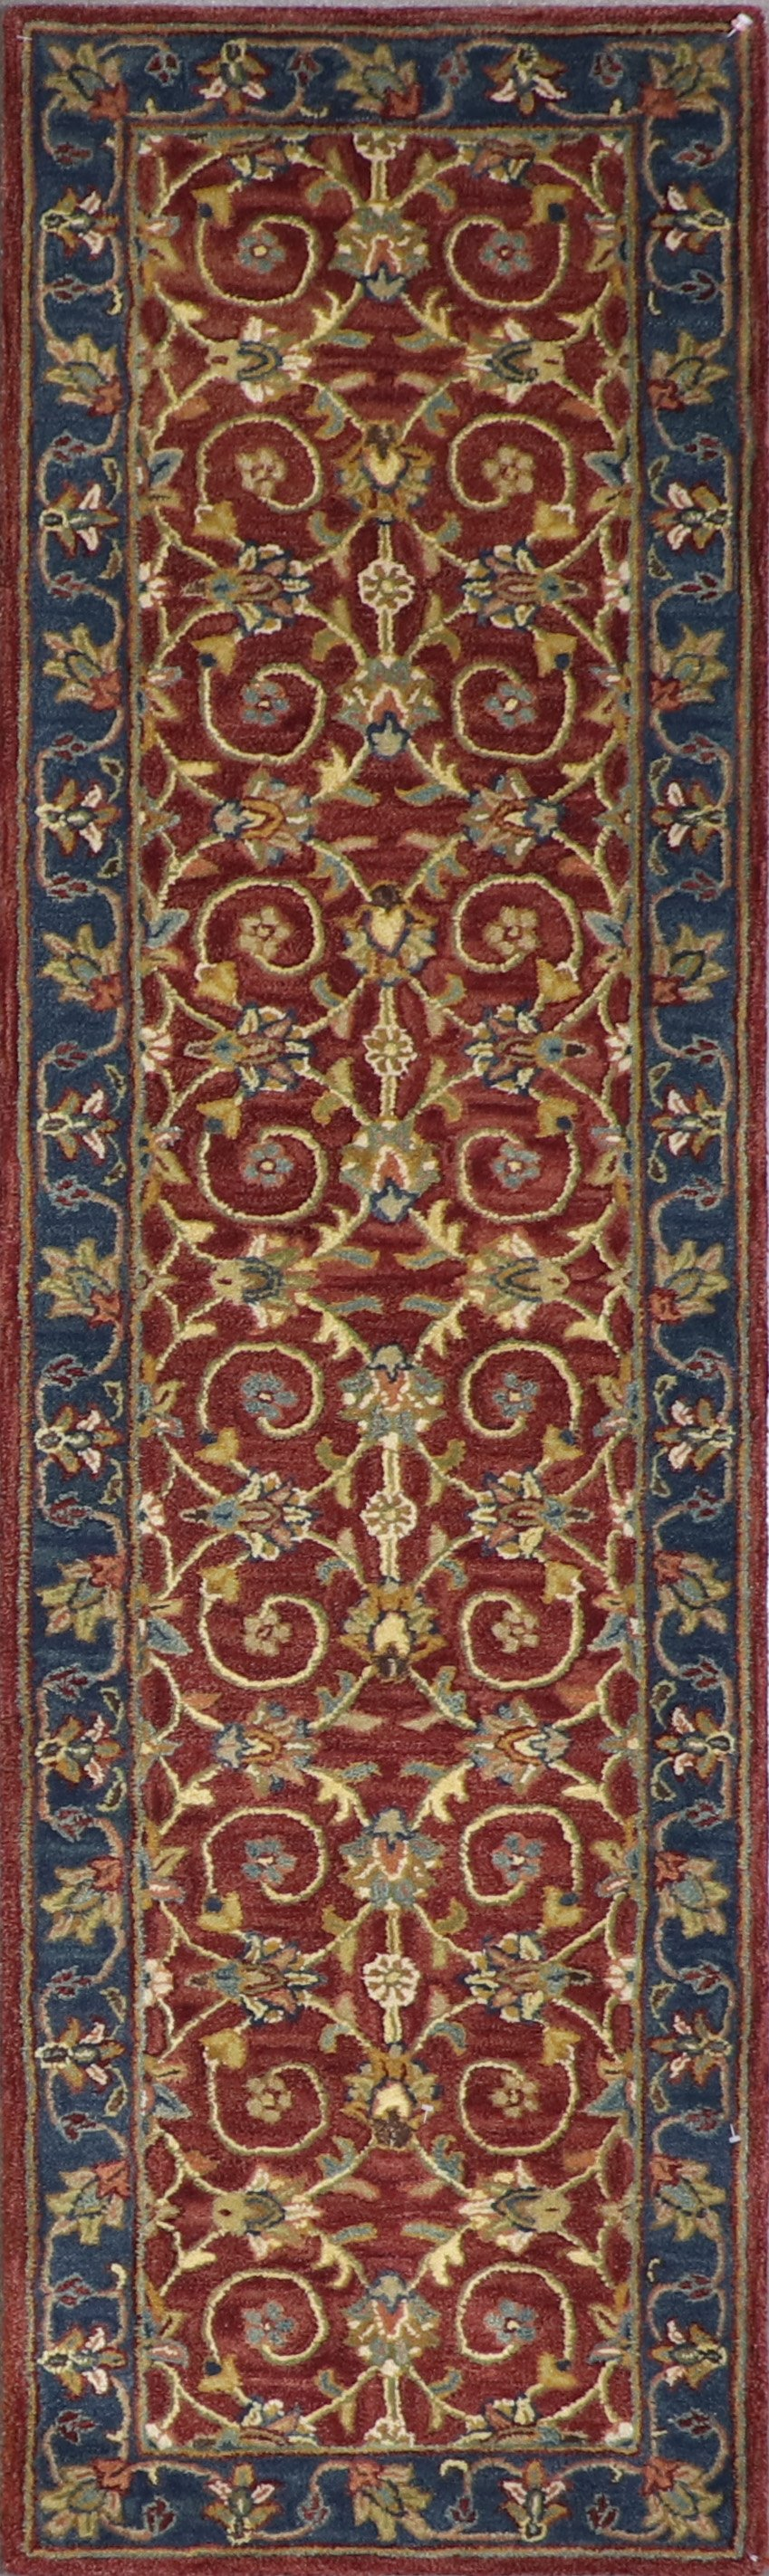 """2'3""""x7'11"""" Decorative Brugundy Wool Hand-Tufted Rug - Direct Rug Import   Rugs in Chicago, Indiana,South Bend,Granger"""